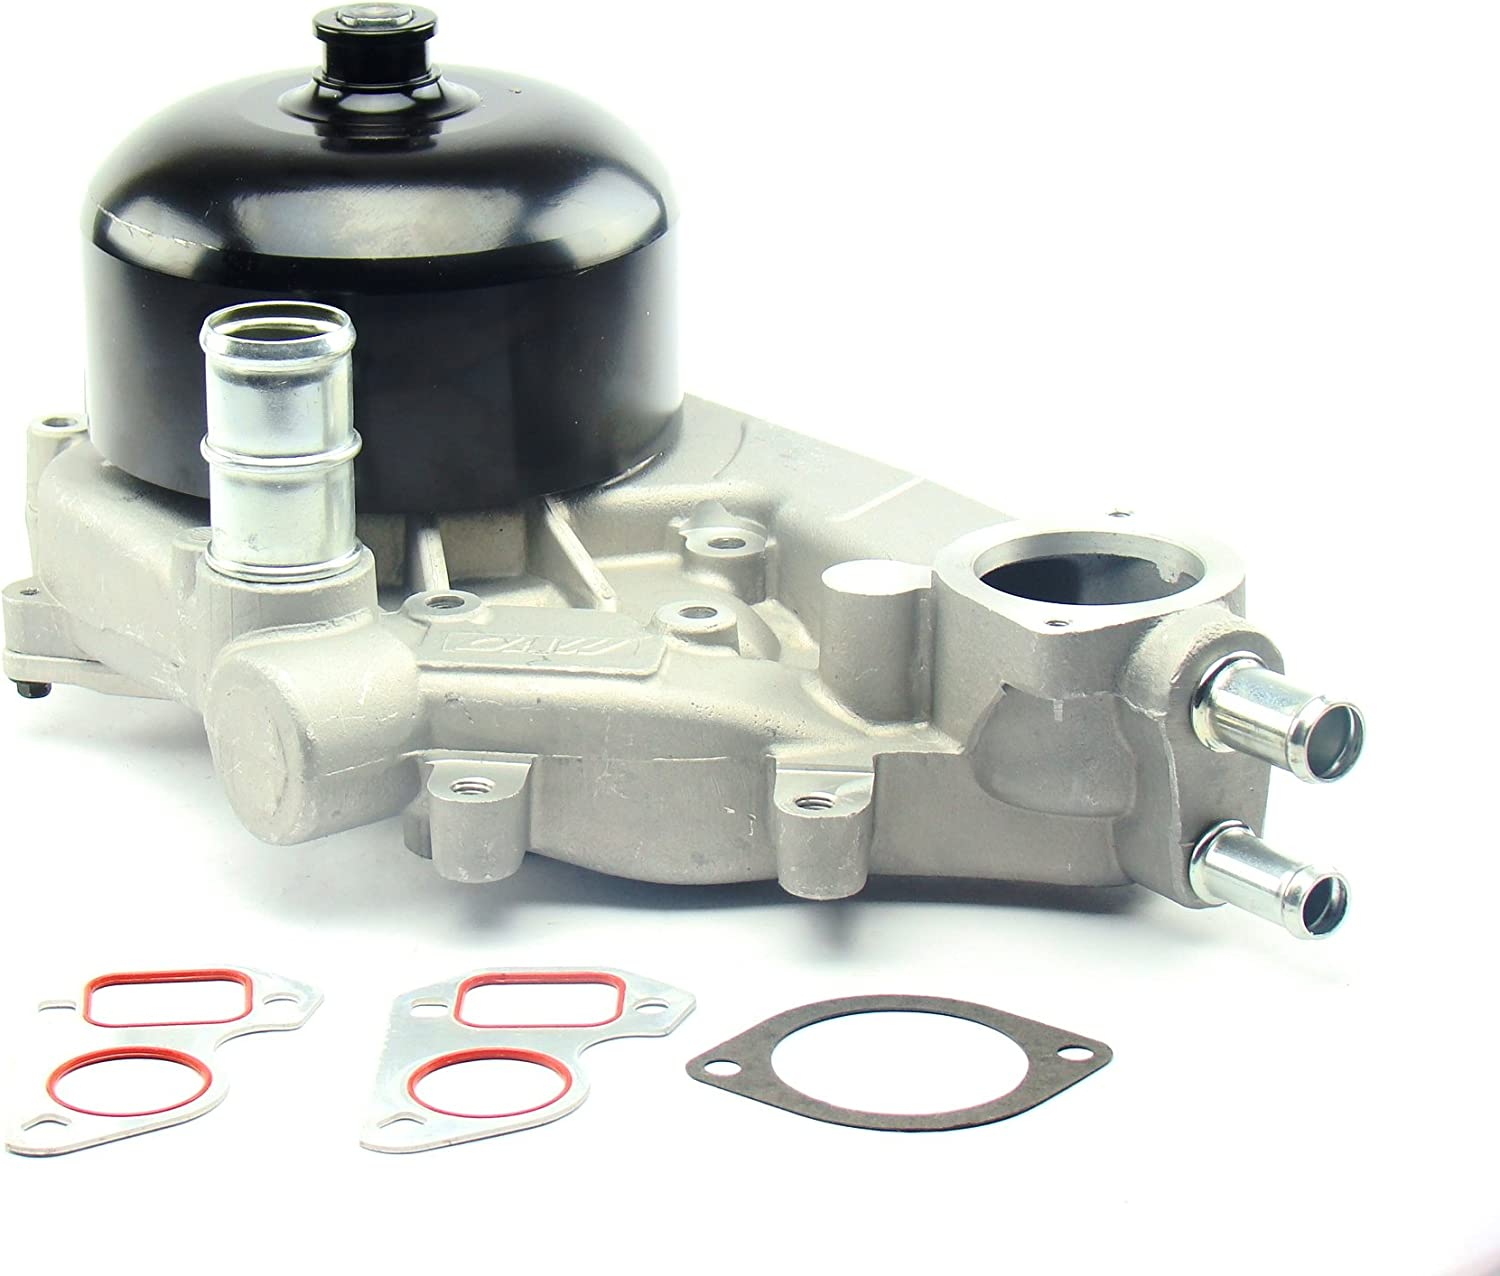 OAW G7290 Engine Water Pump for Chevrolet Camaro Corvette & Pontiac Firebird GTO LS1 LS6 5.7L